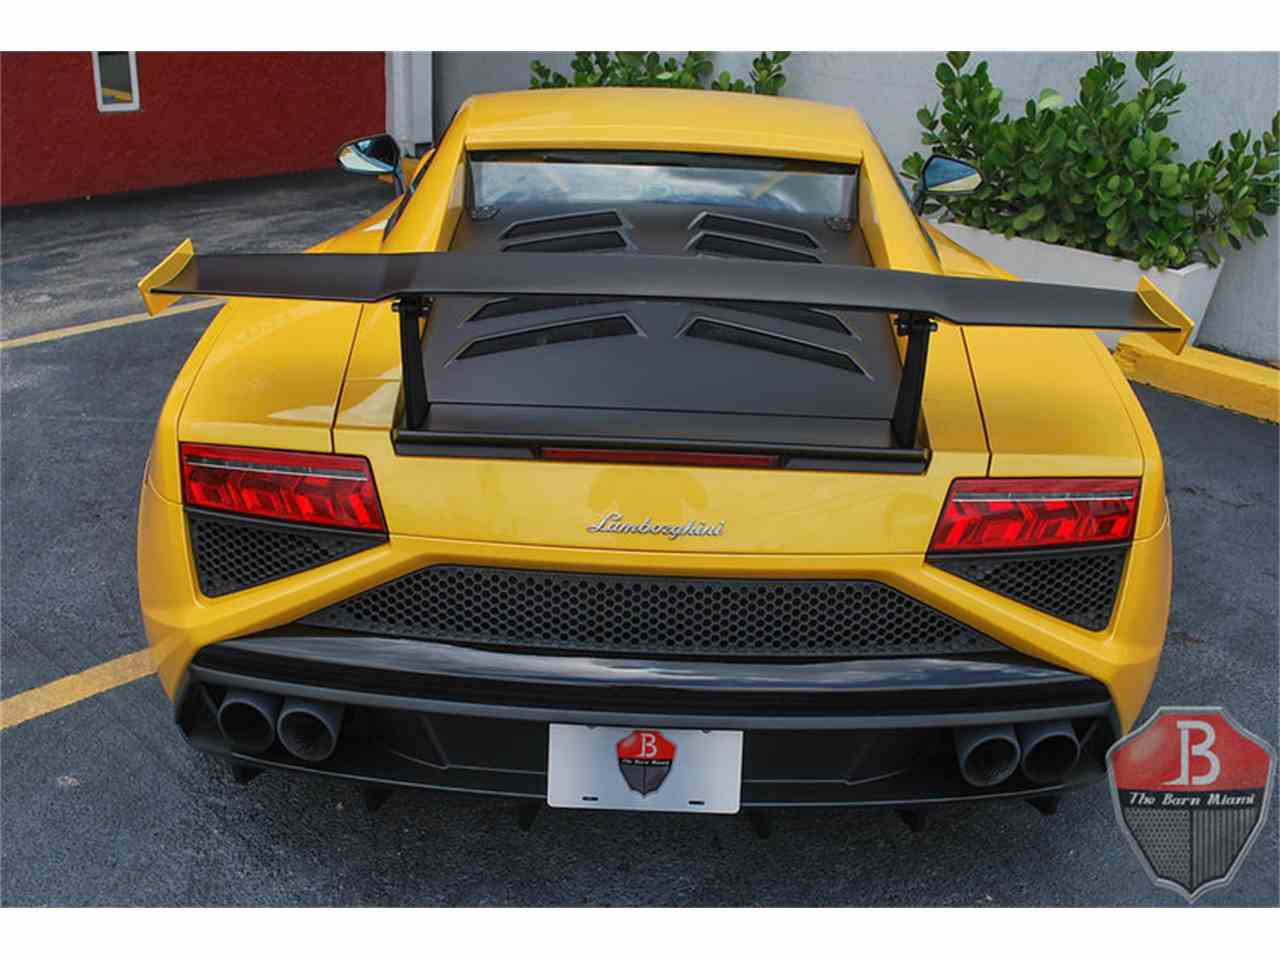 Large Picture of '14 Gallardo Squadra Corse - $244,900.00 Offered by The Barn Miami - IRP5